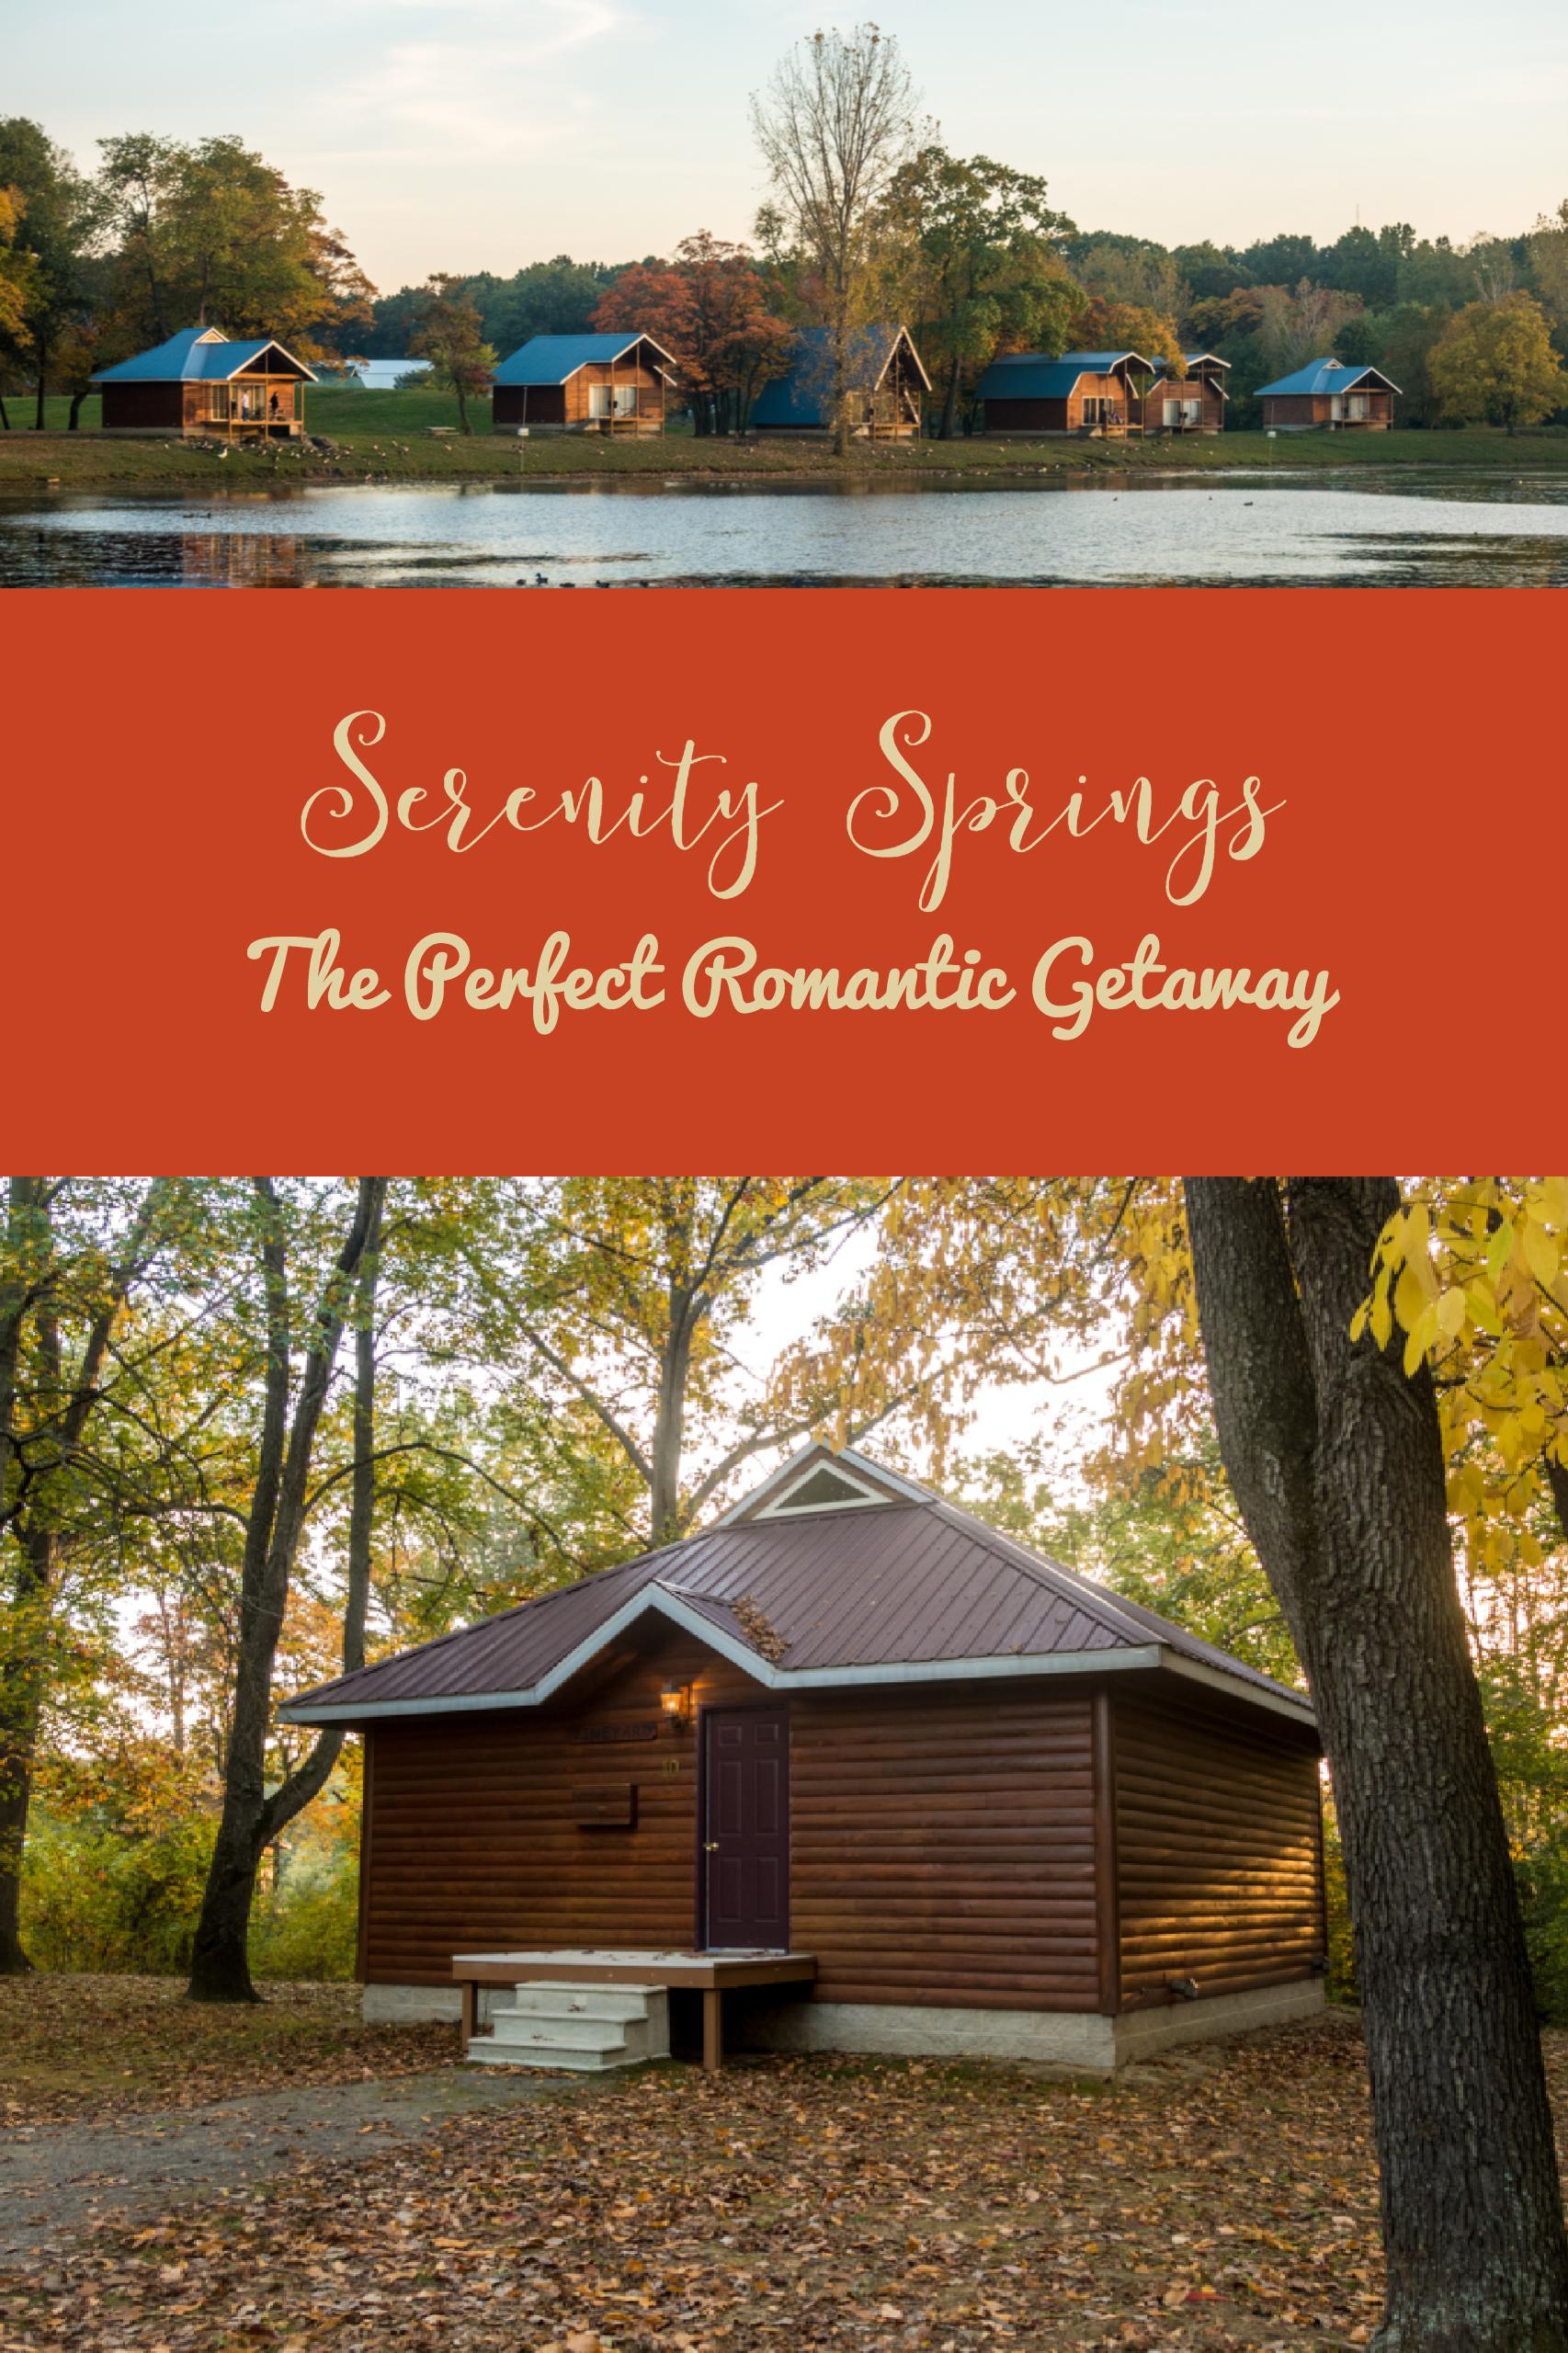 Serenity Springs: The Perfect Romantic Getaway for celebrating an anniversary or any occasion. #travel #getaway #romantic